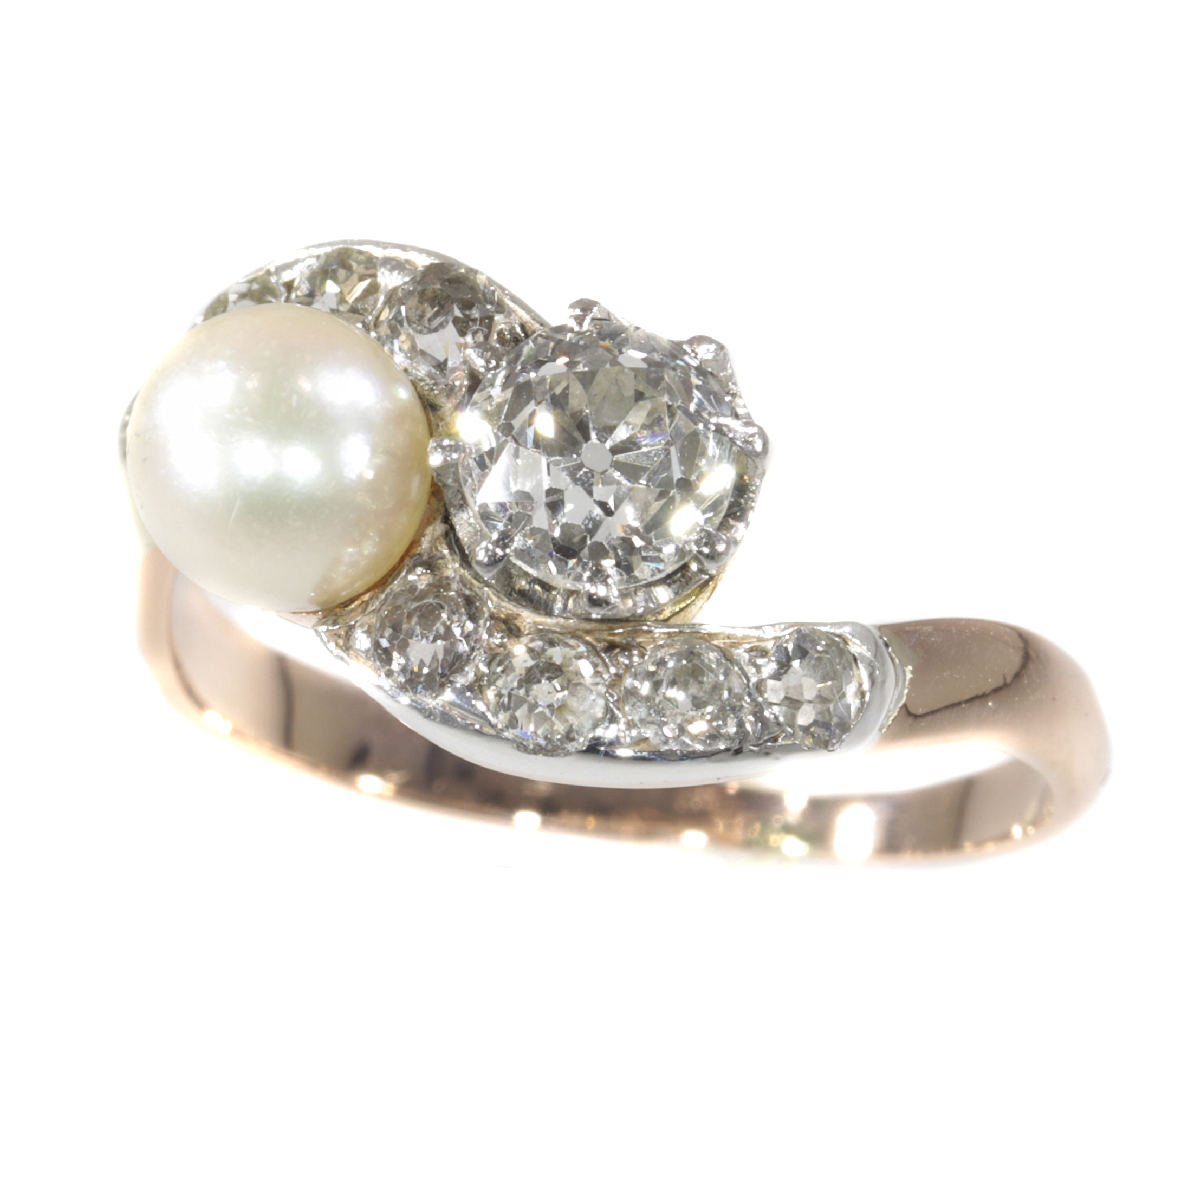 Victorian diamond and pearl engagement ring so-called romantic Toi et Moi